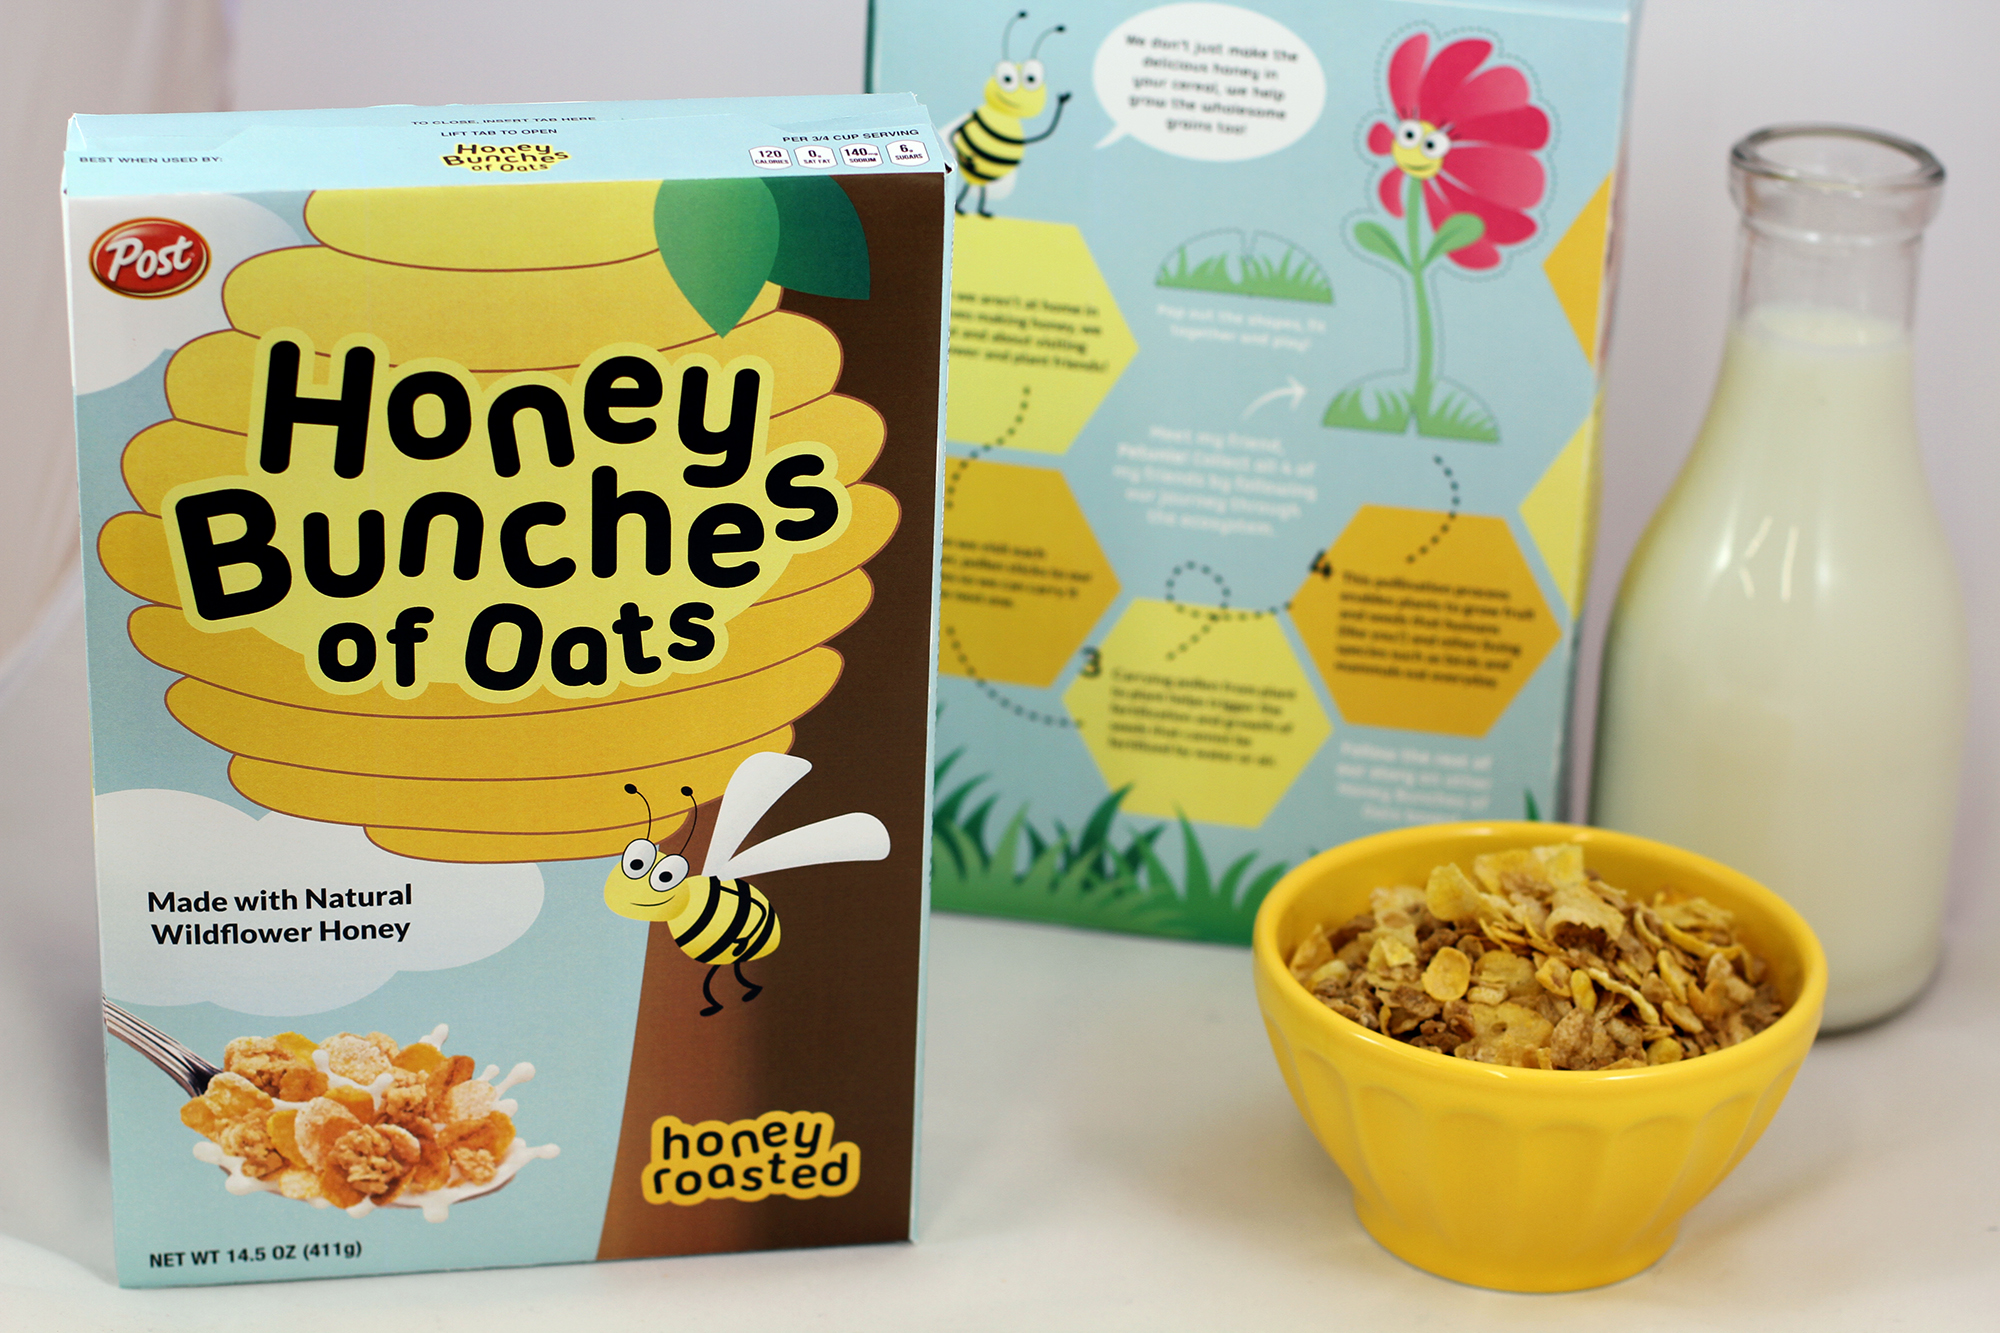 Honey Bunches of Oats redesign